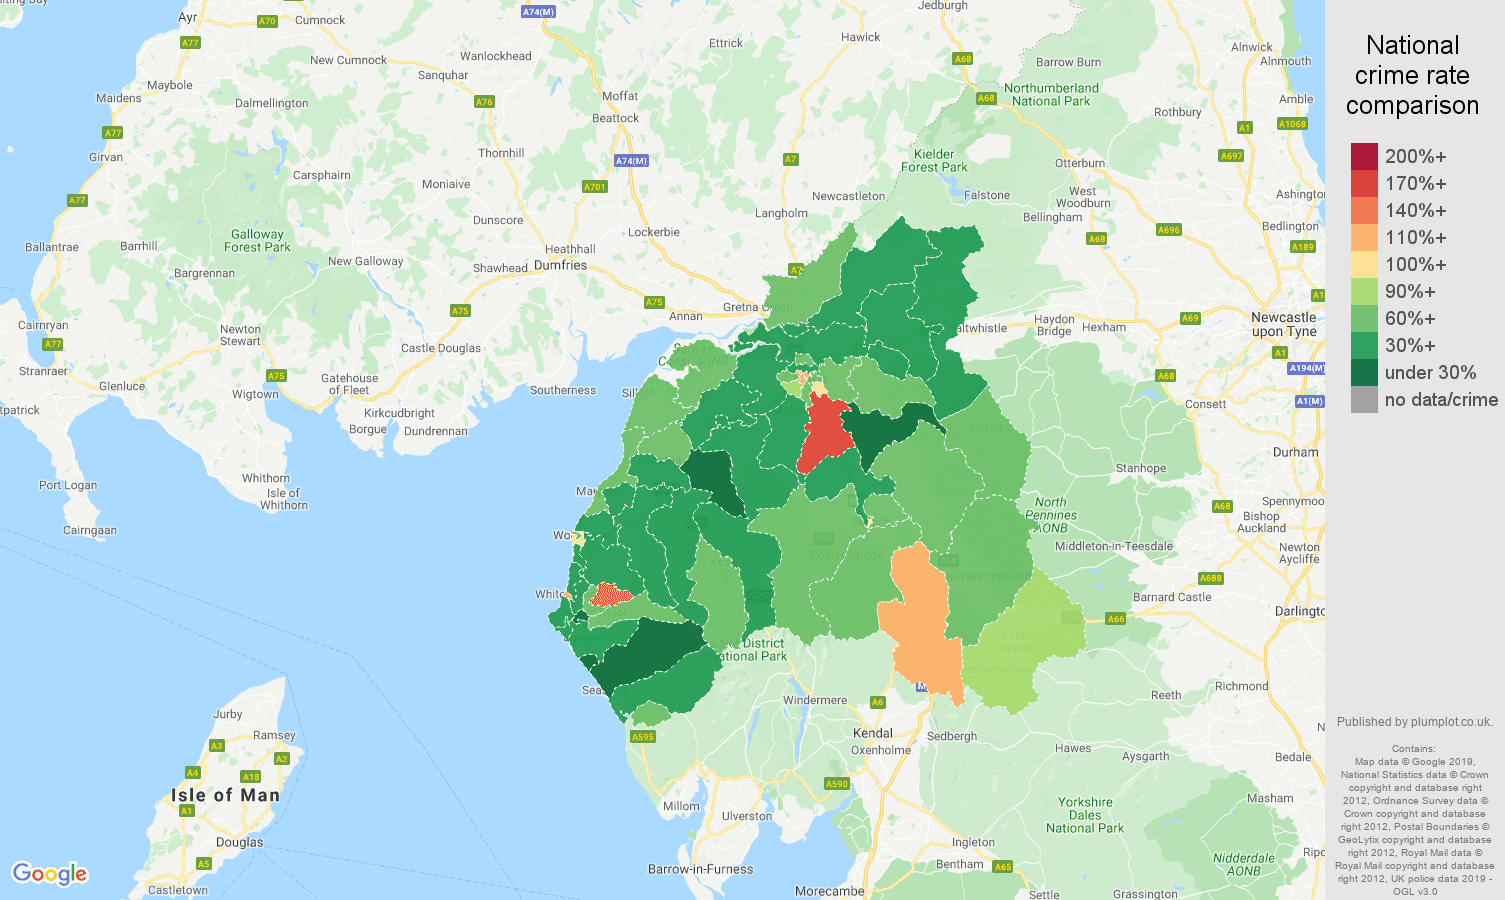 Carlisle other theft crime rate comparison map